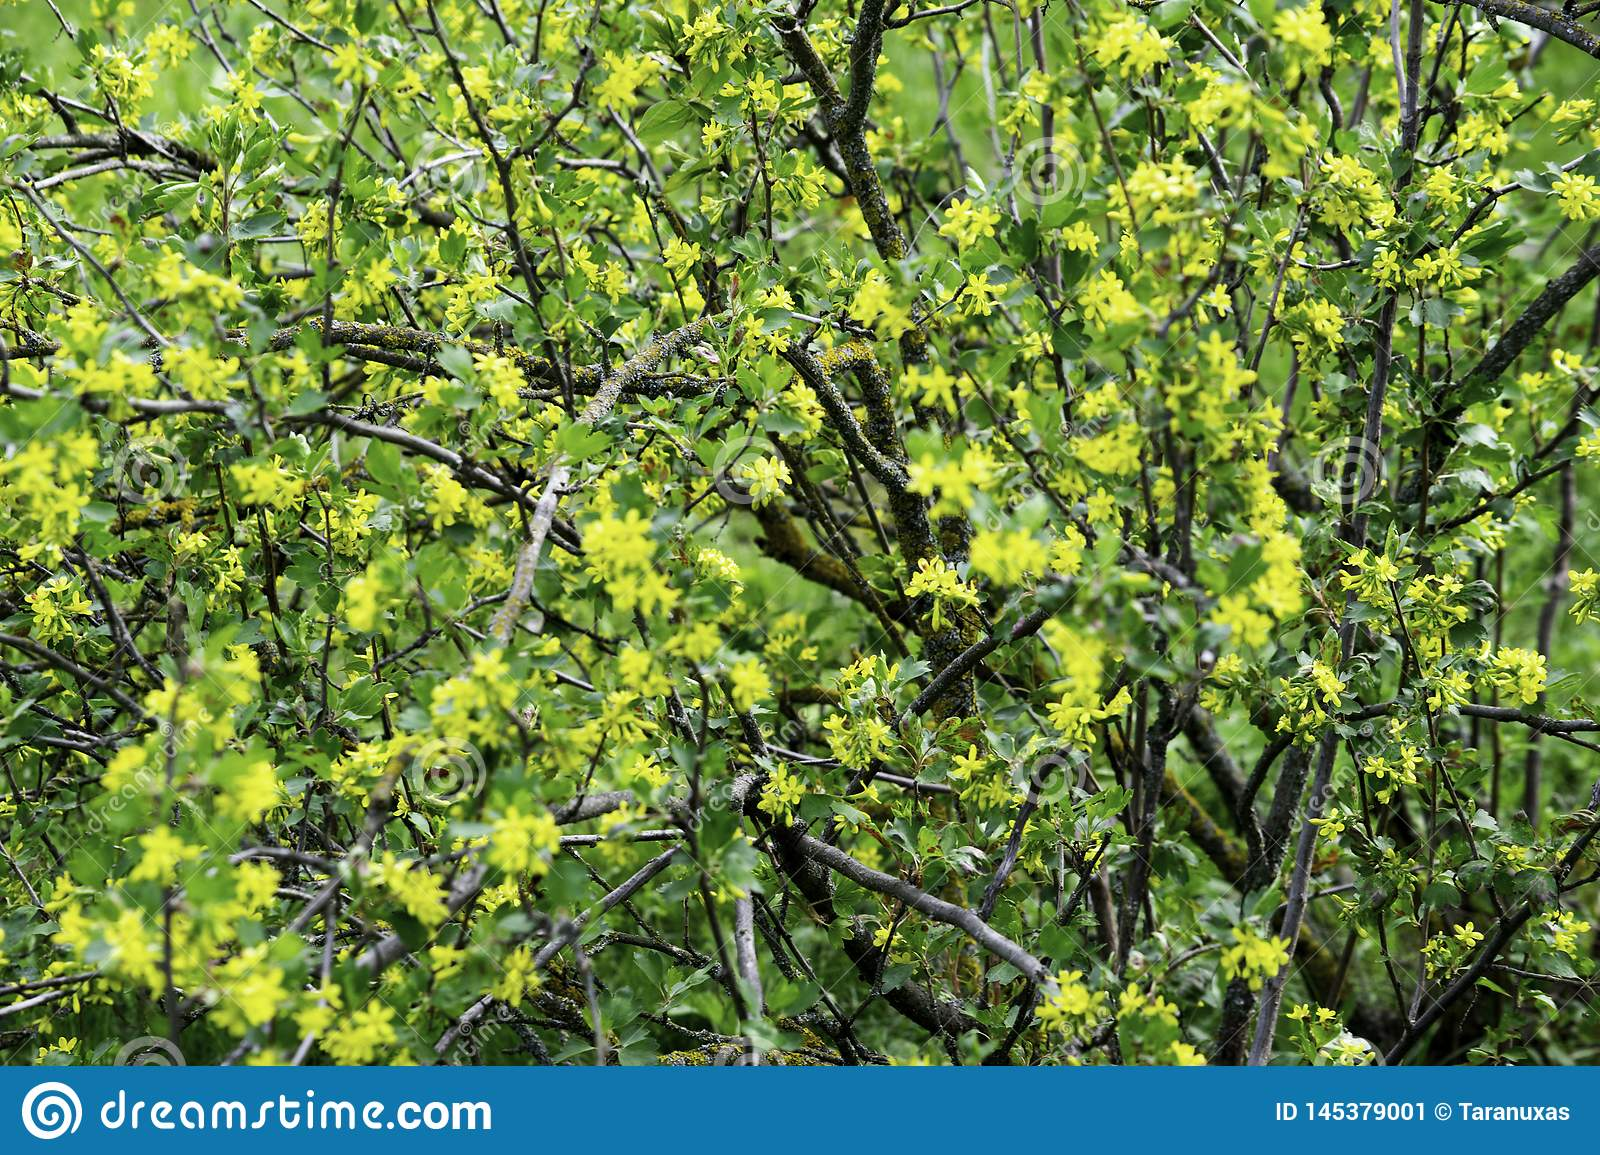 Flowering Black Currant Bushes In Spring Small Yellow Flowers